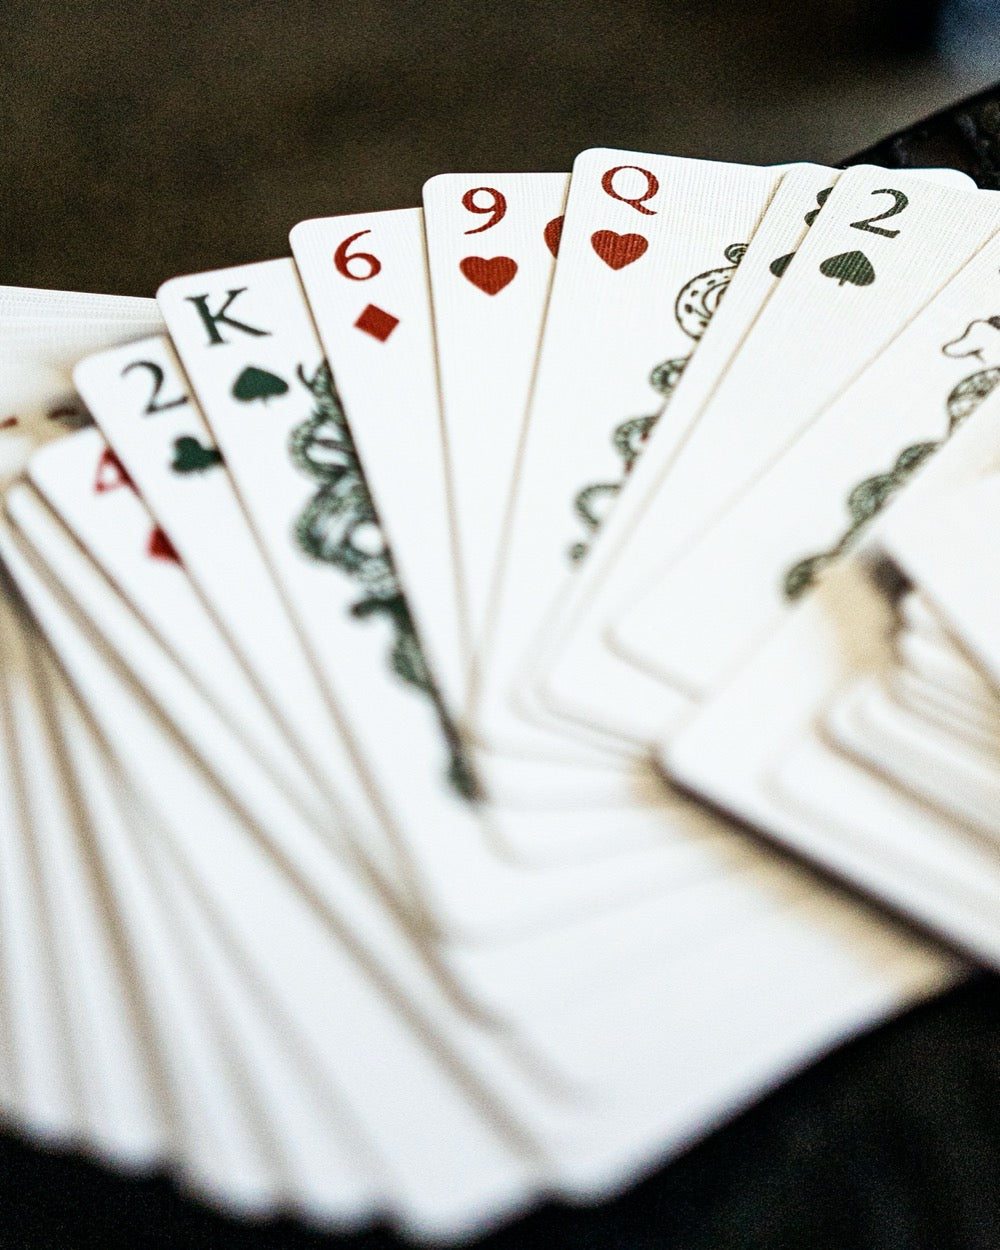 close up photo of numbers and pips of a deck of playing cards